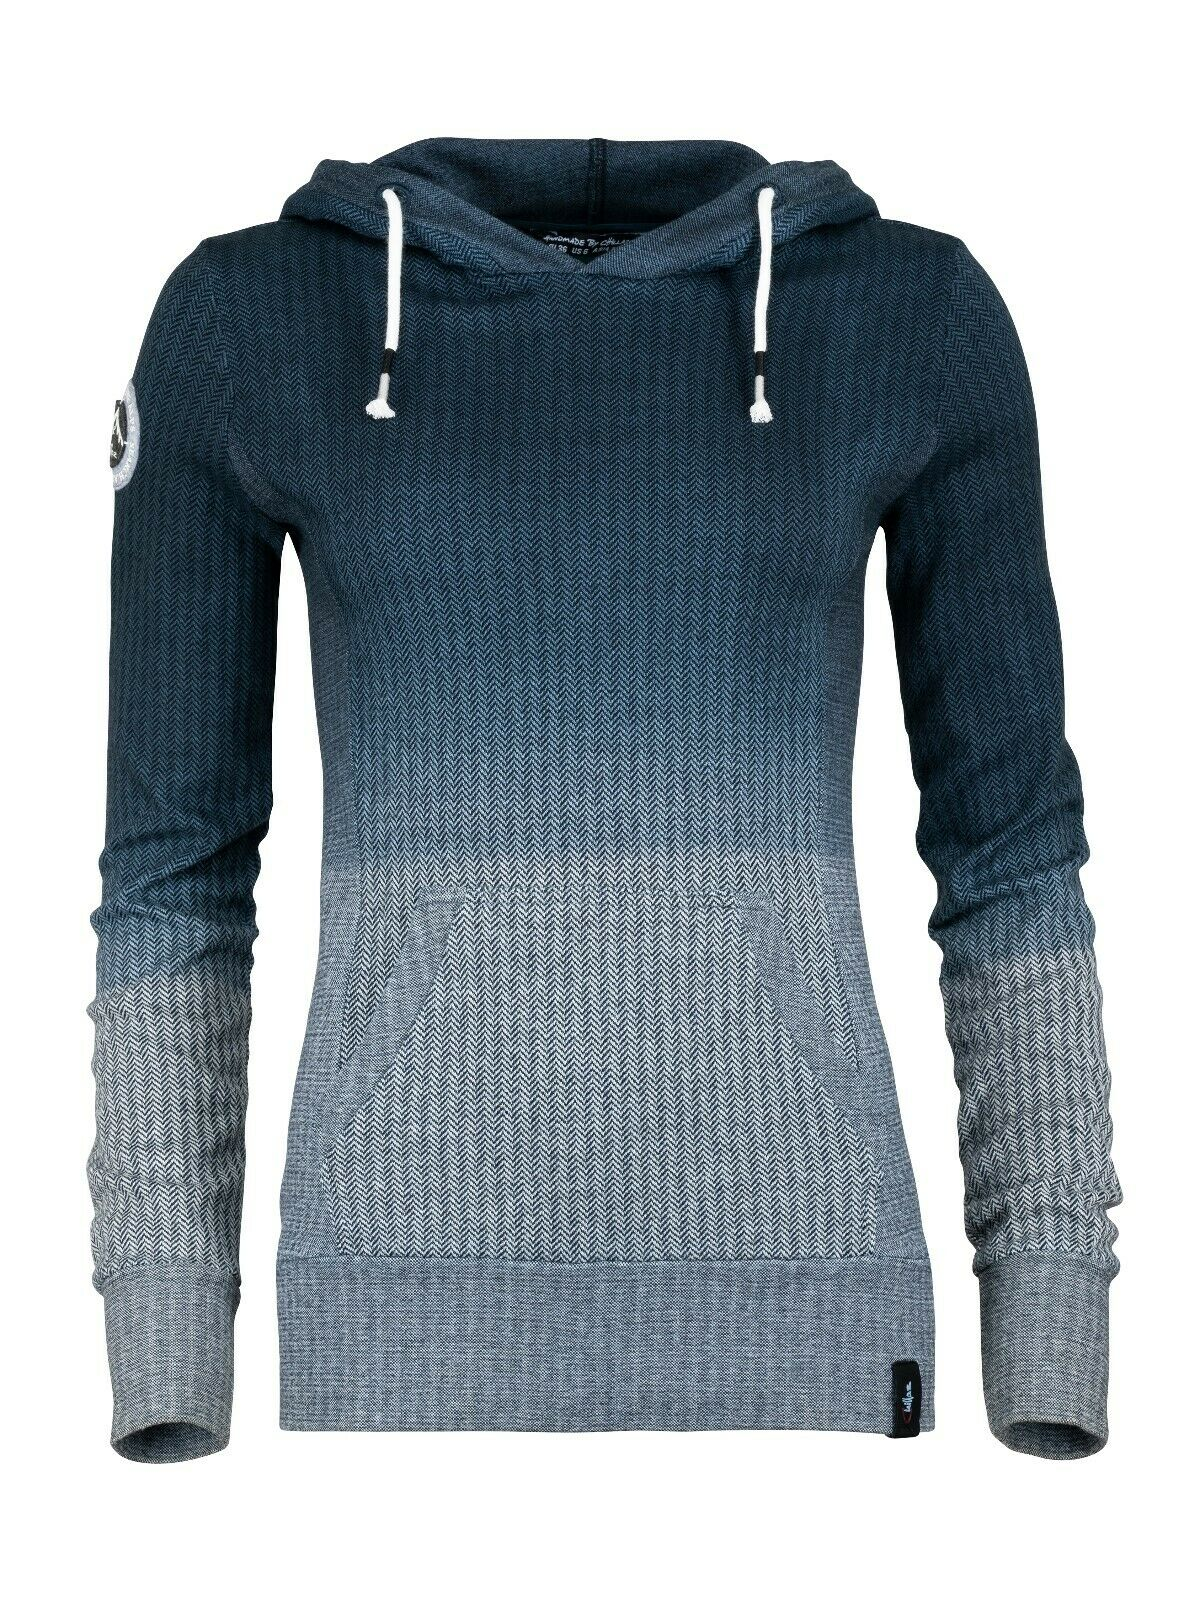 llaz GIA Hoodie Women's Hoody Sweater for Ladies Grey  - Anthracite  credit guarantee